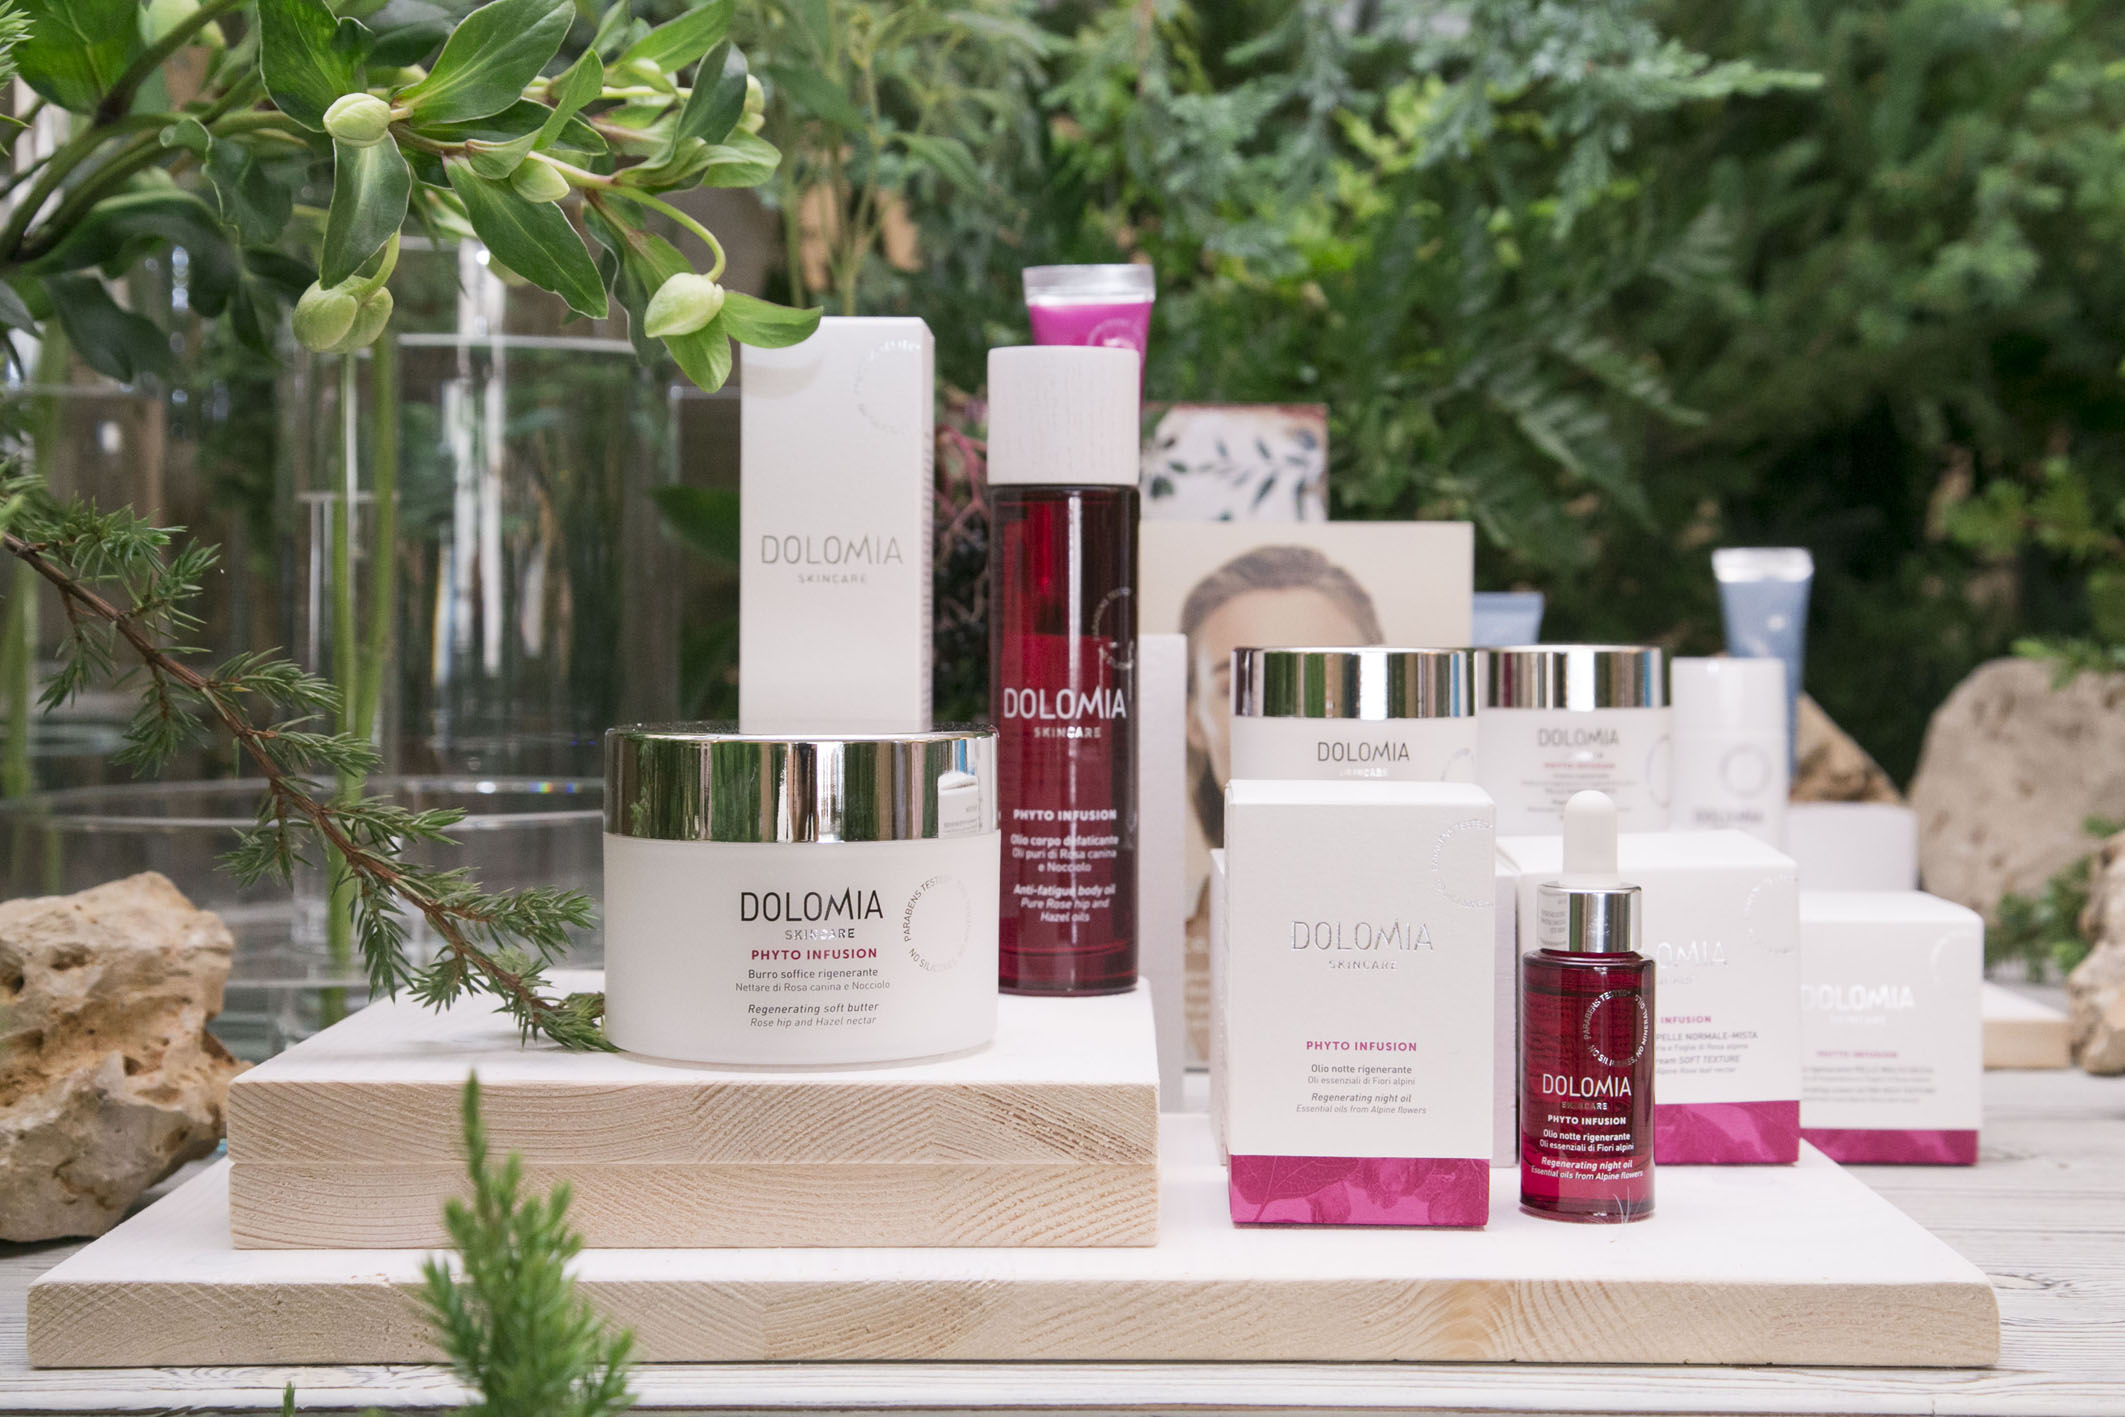 Dolomia Skincare new launch set styling project @ Fioraio Bianchi 04